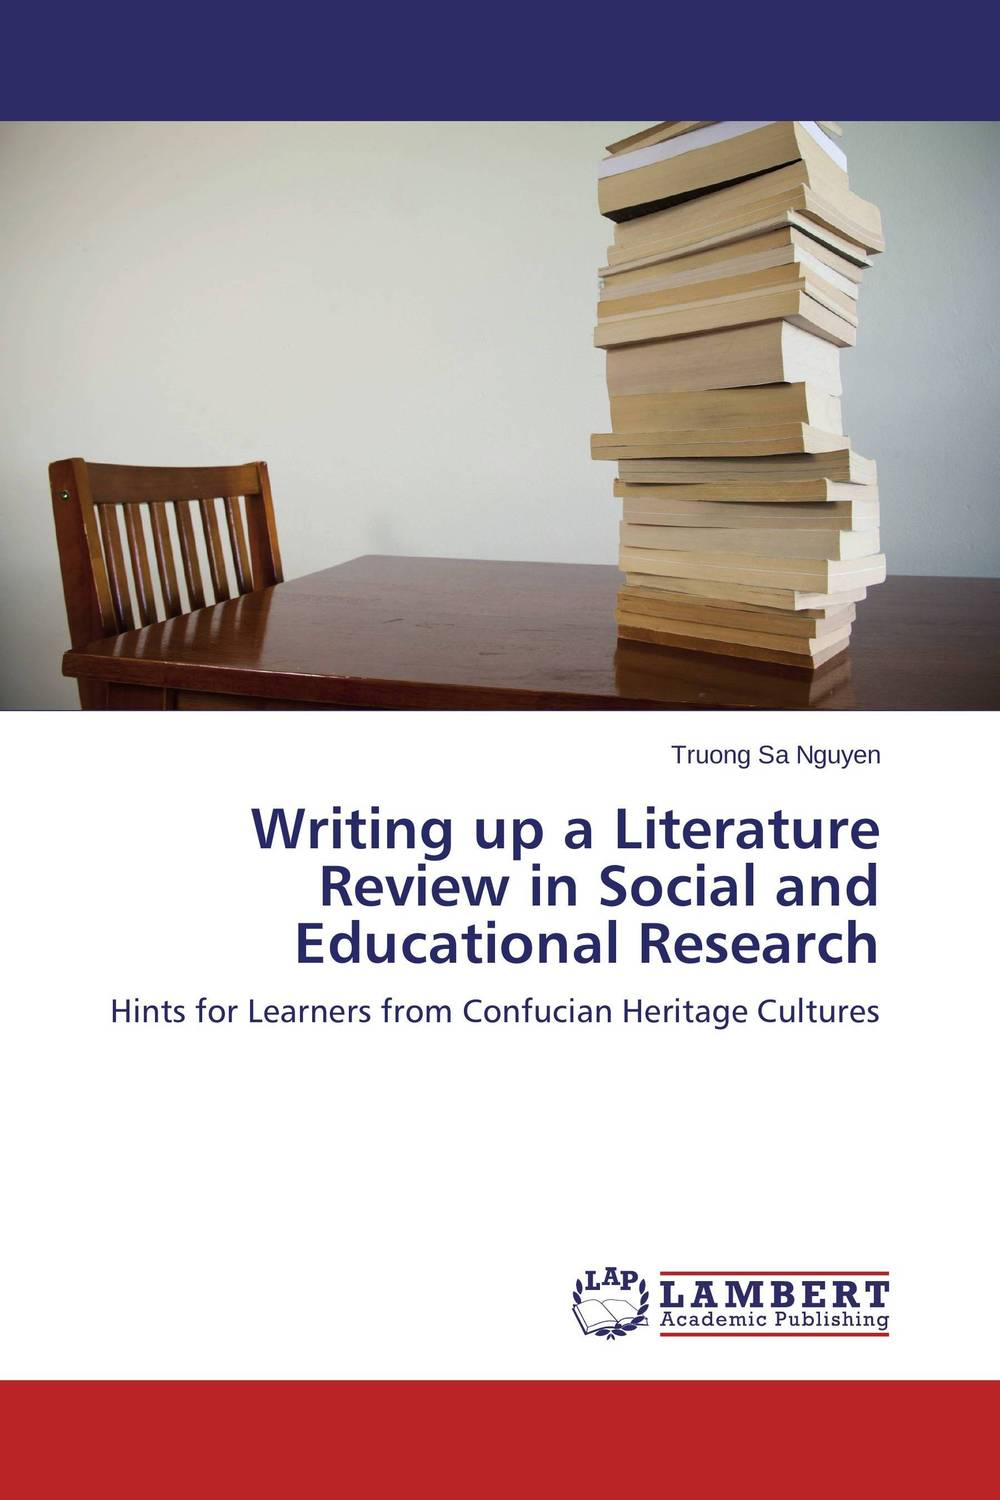 Writing up a Literature Review in Social and Educational Research